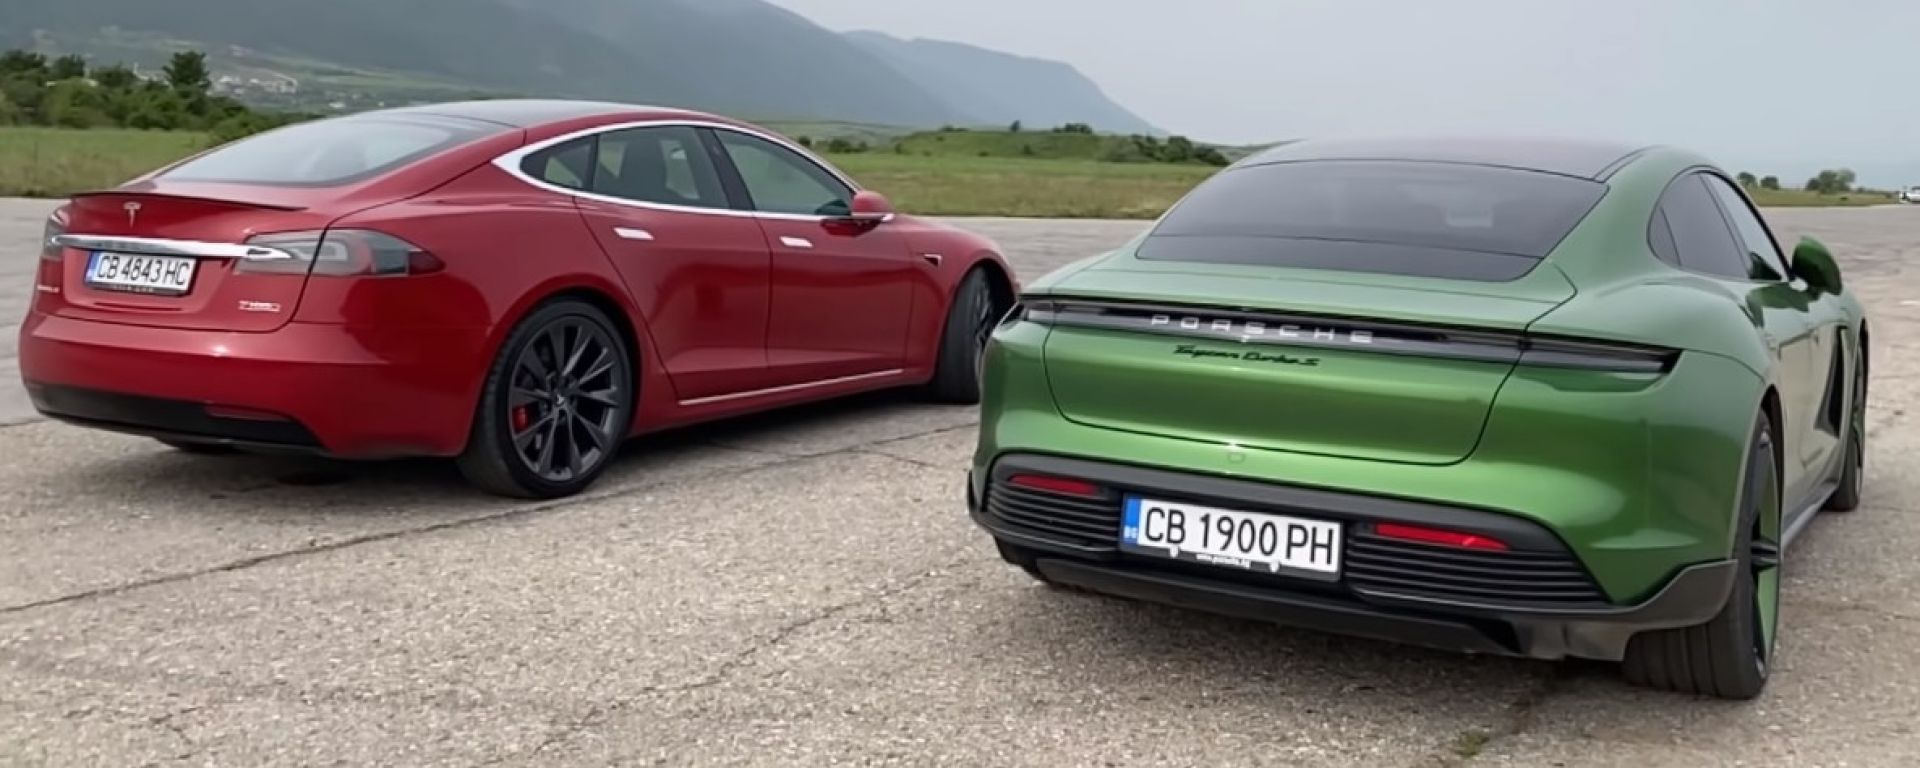 Porsche Taycan Turbo S vs Tesla Model S P100 D Ludicrous